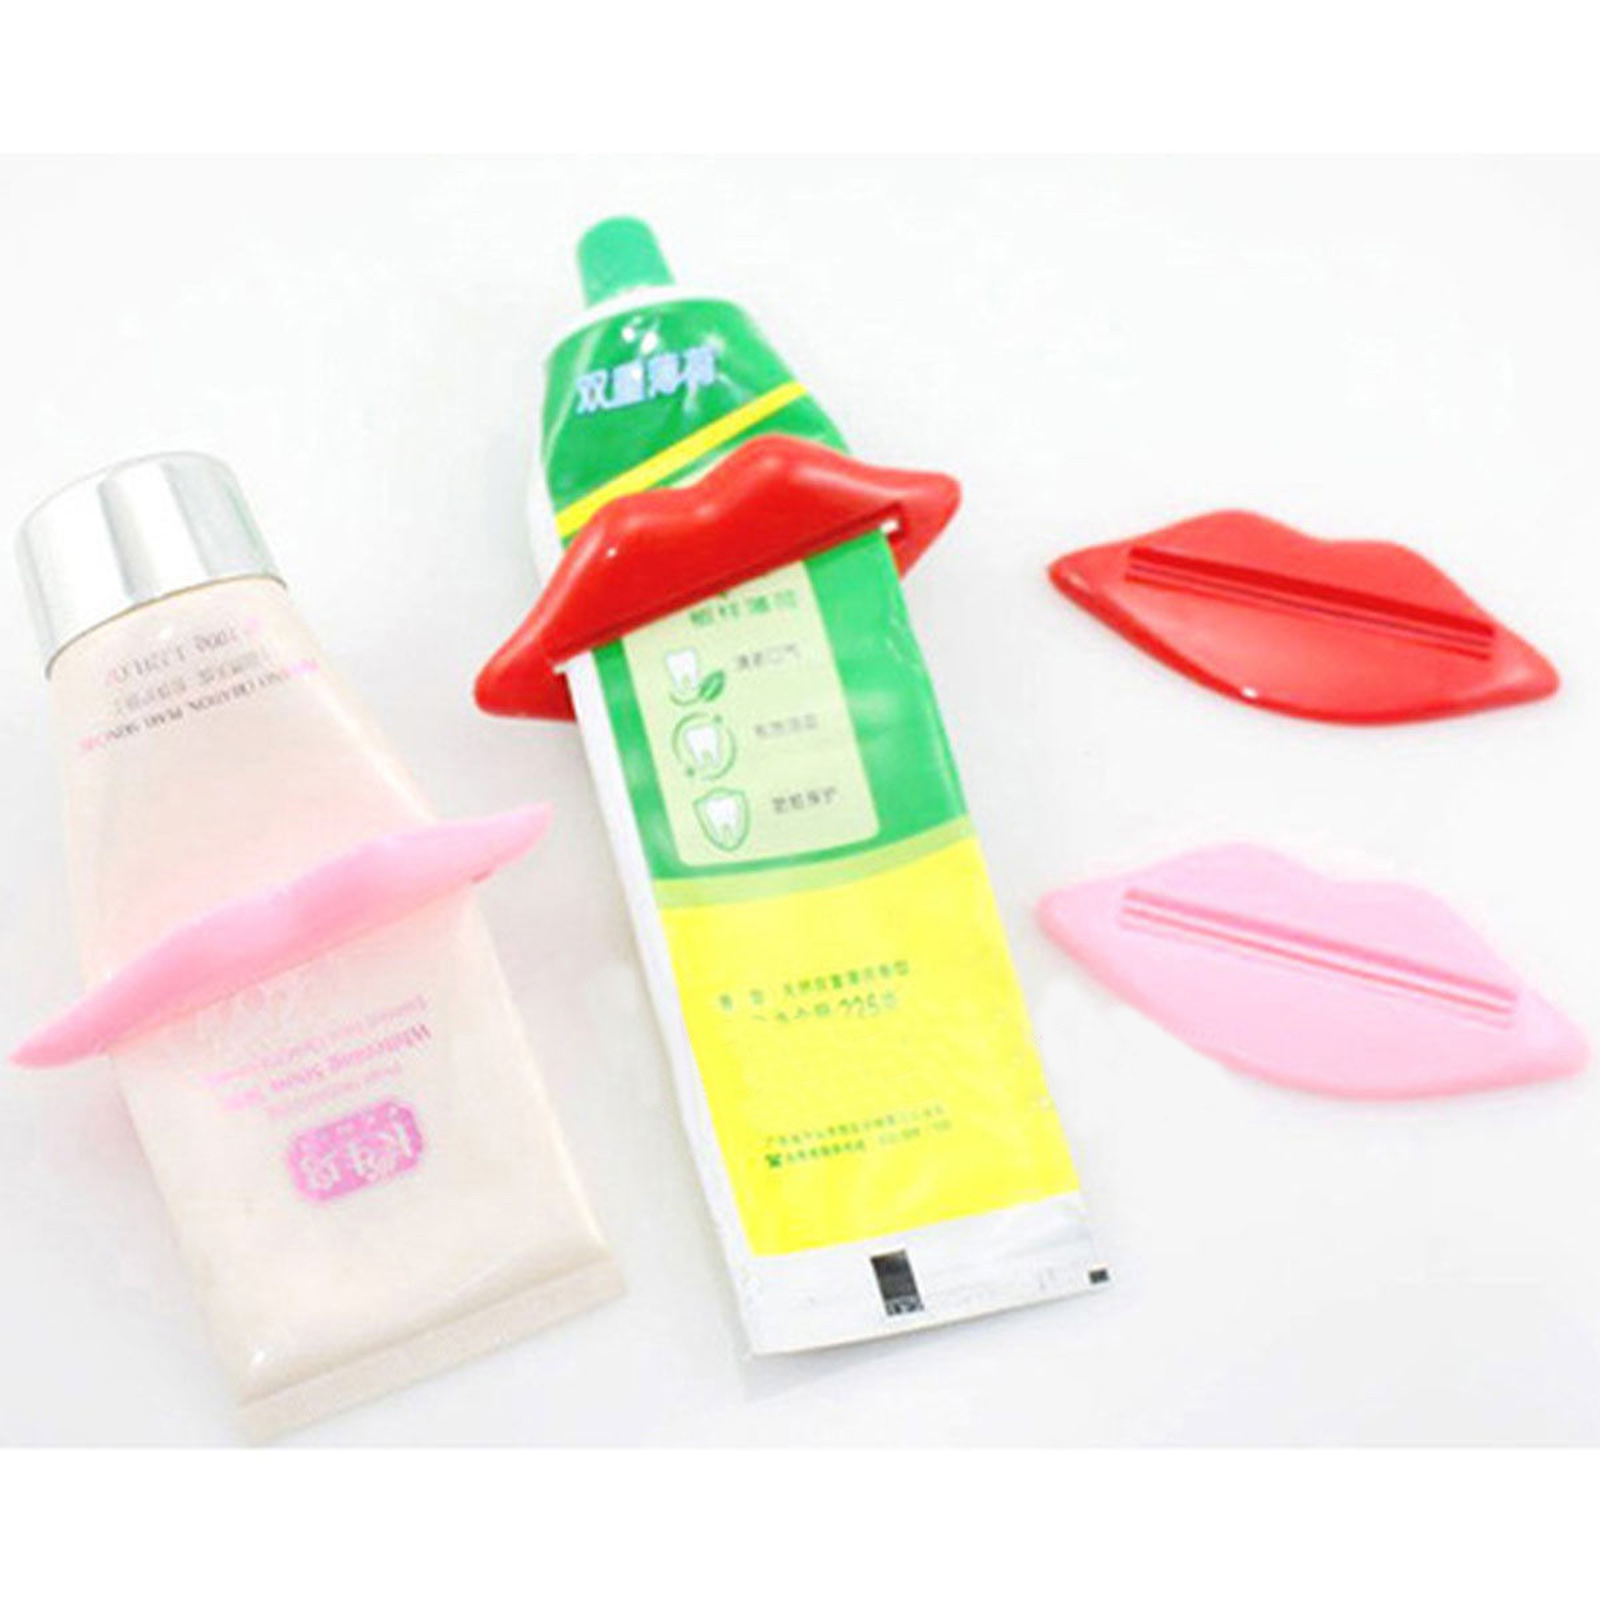 1pc Practical Toothpaste Dispenser Rolling Holder  Easy Cartoon Sexy Lips Plastic Bathroom Home Tube Squeezer Accessories Tools